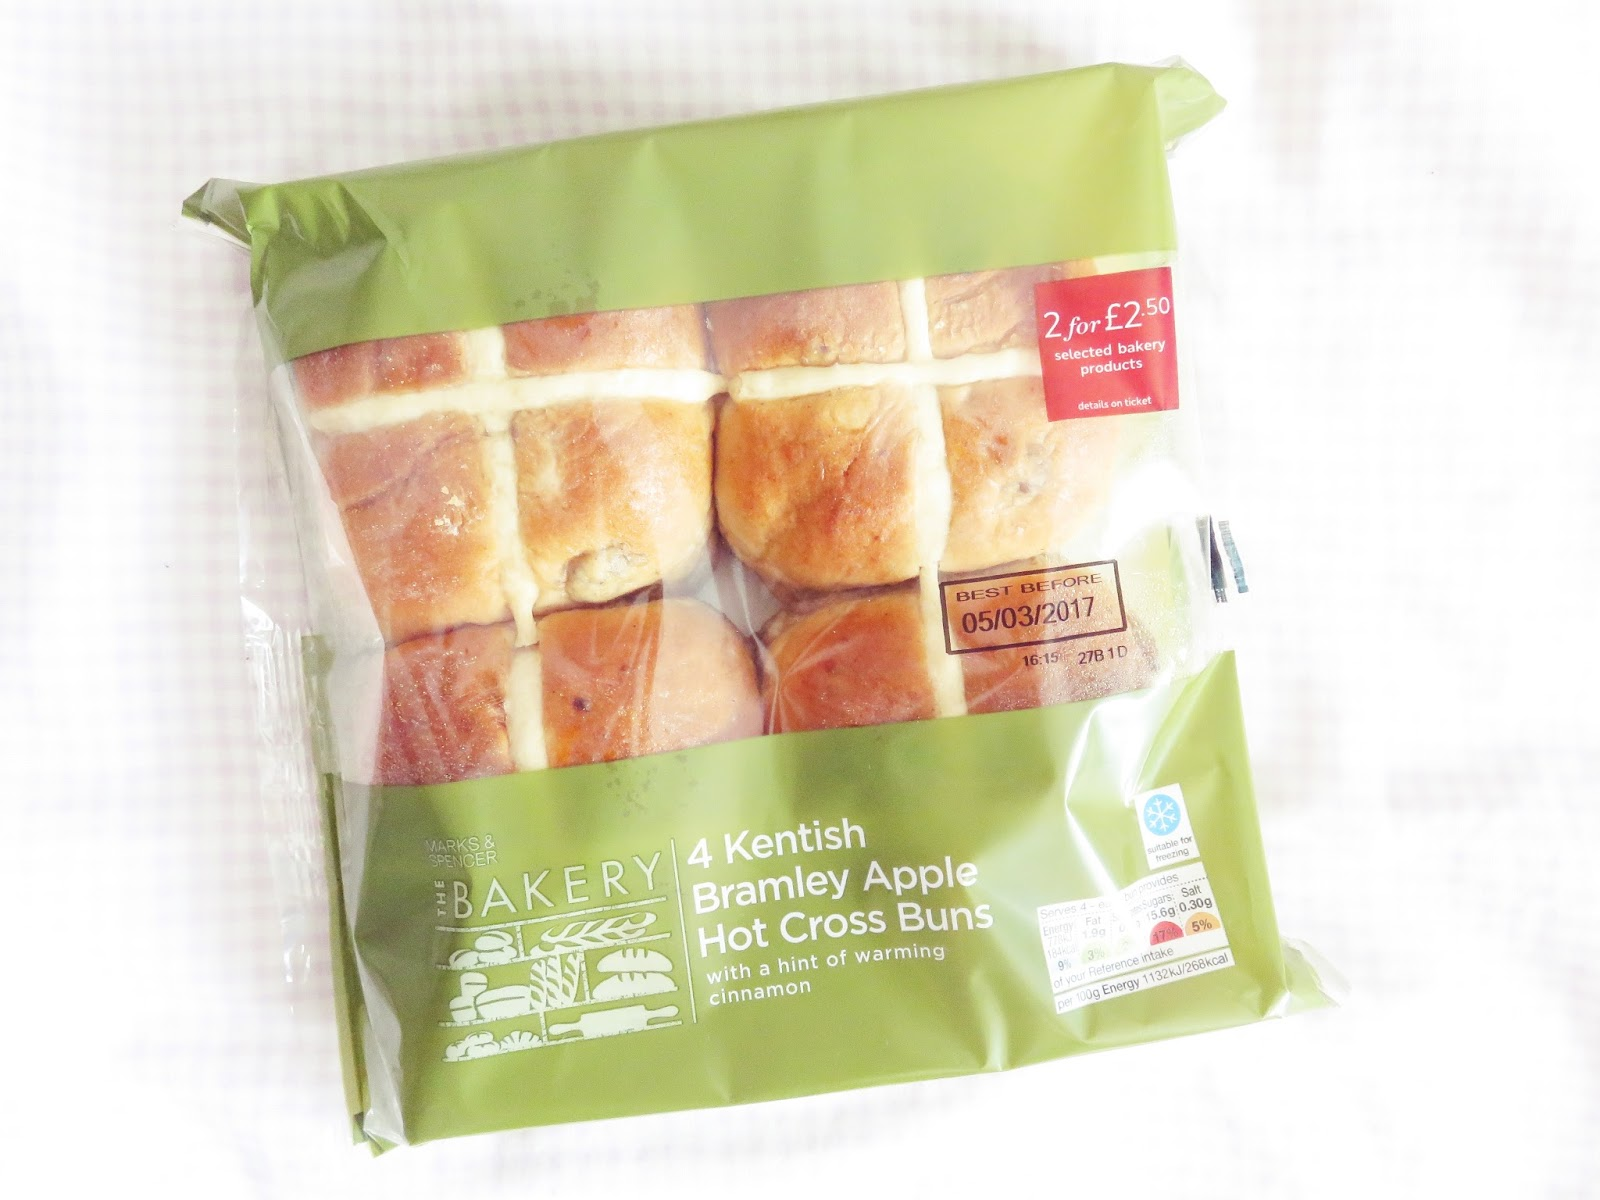 m&s apple hot cross buns taste like deception